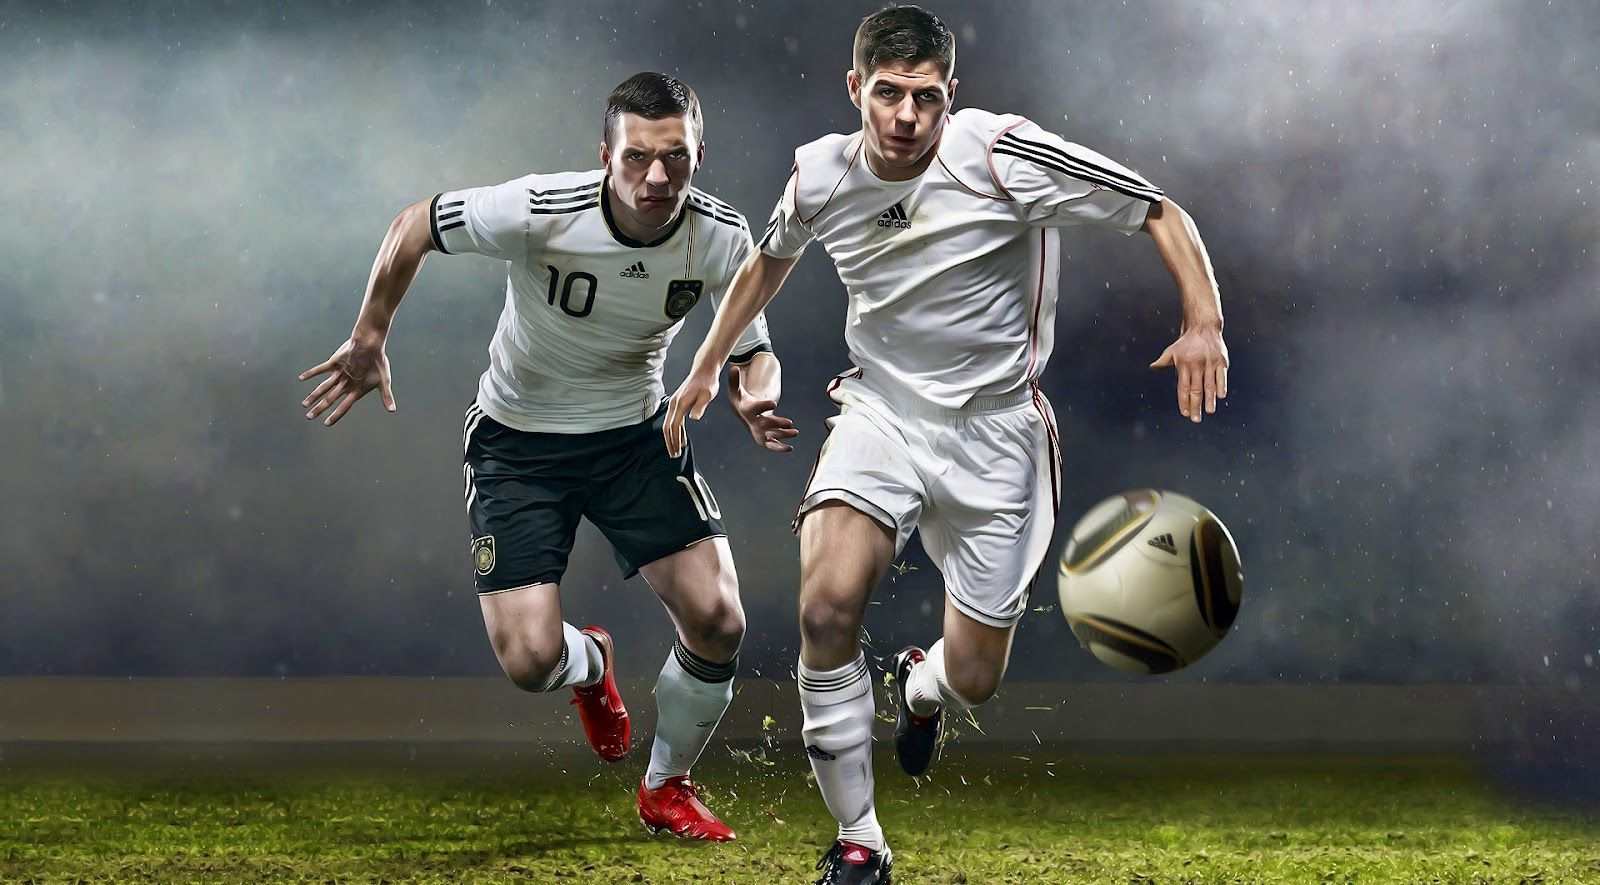 Wallpaper Soccer Players